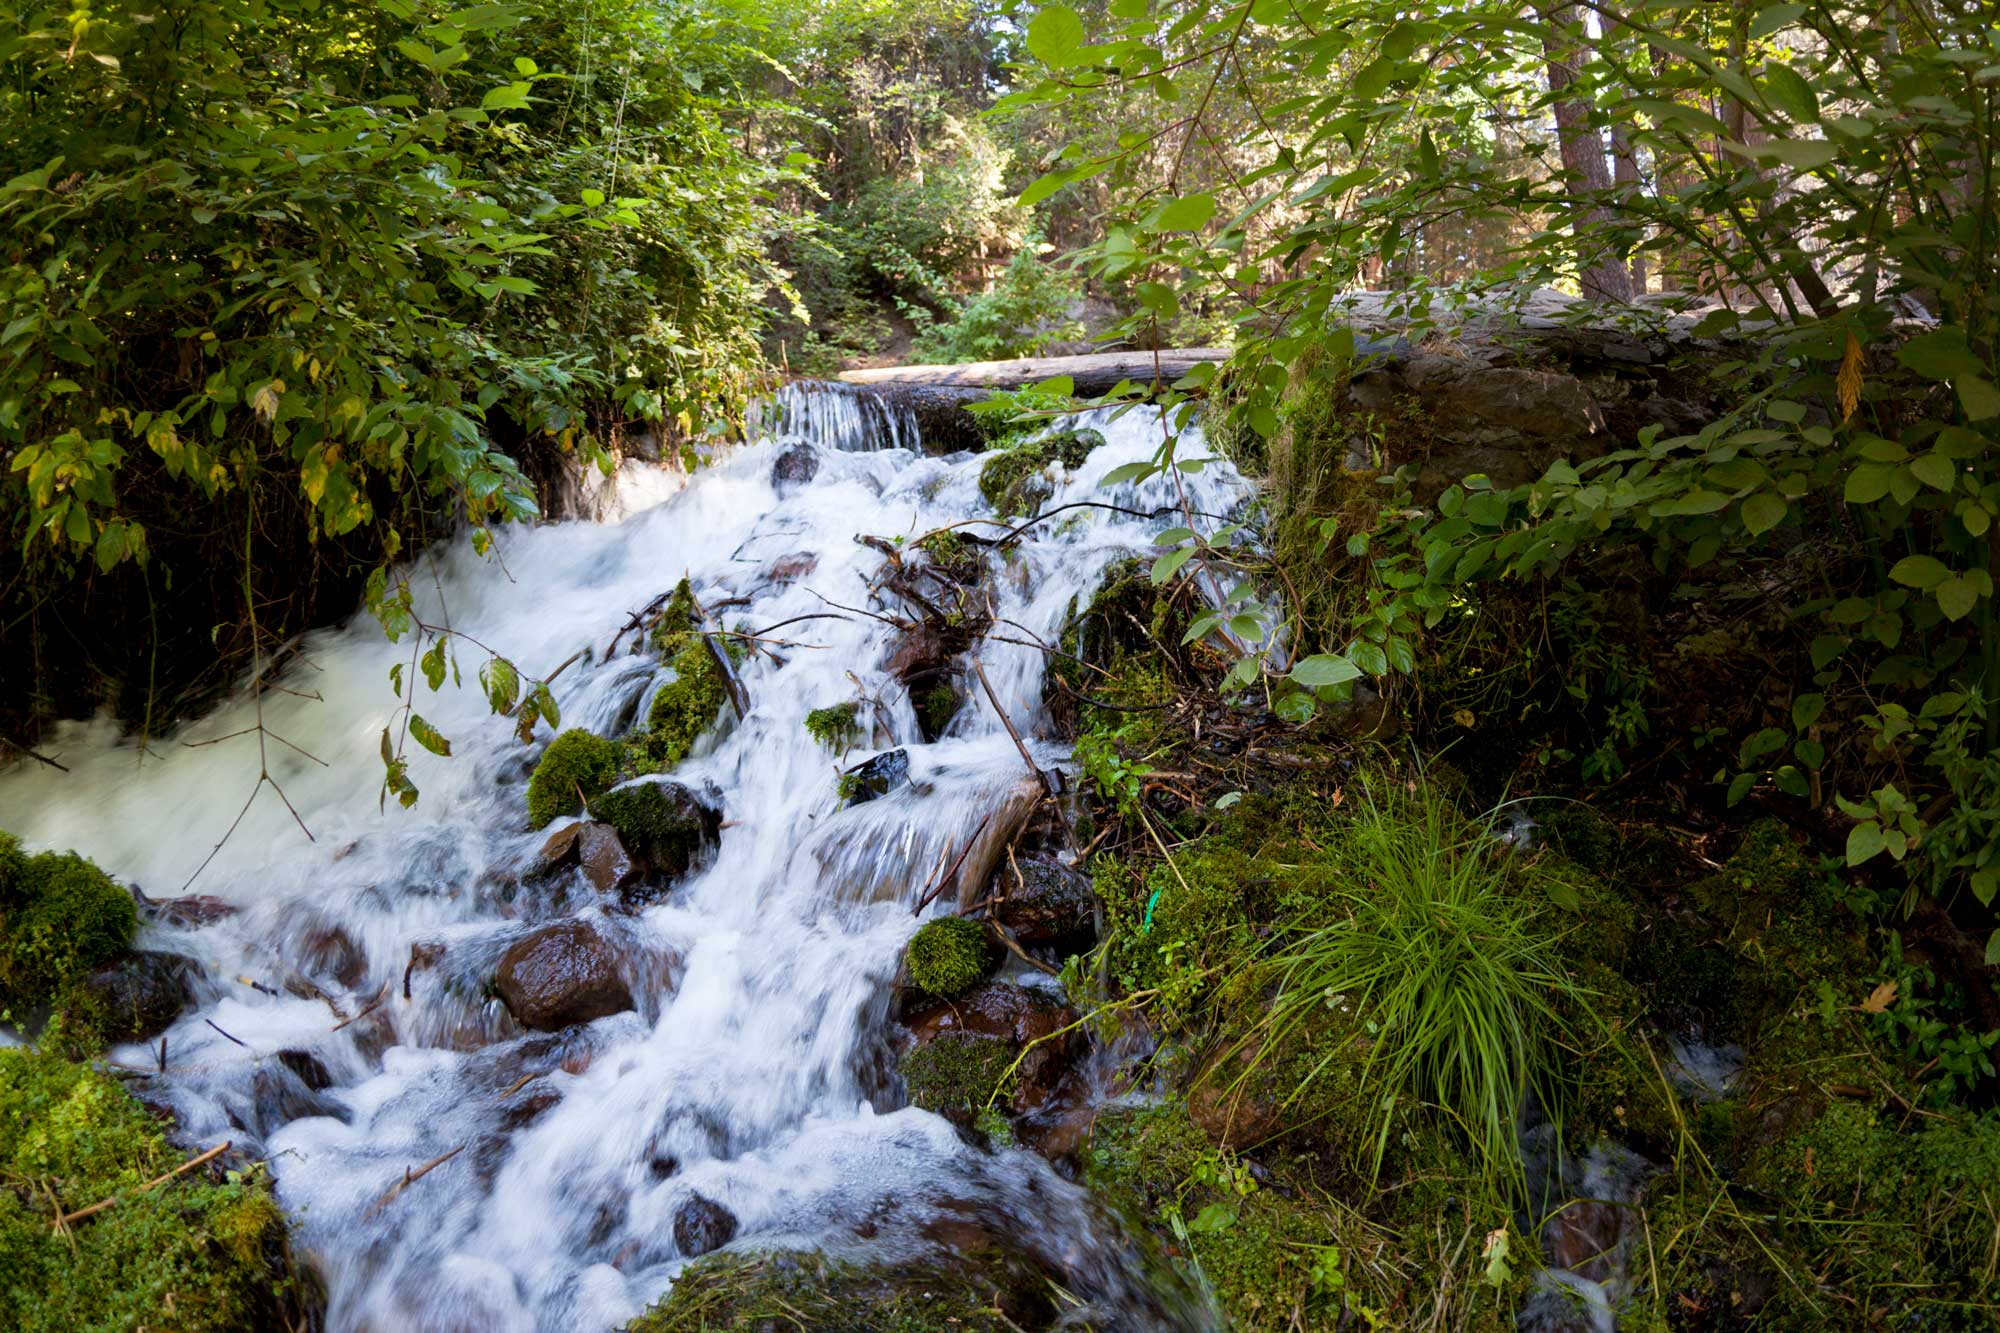 How Water Agencies Could Catalyze Headwater Forest Management - Public Policy Institute of California